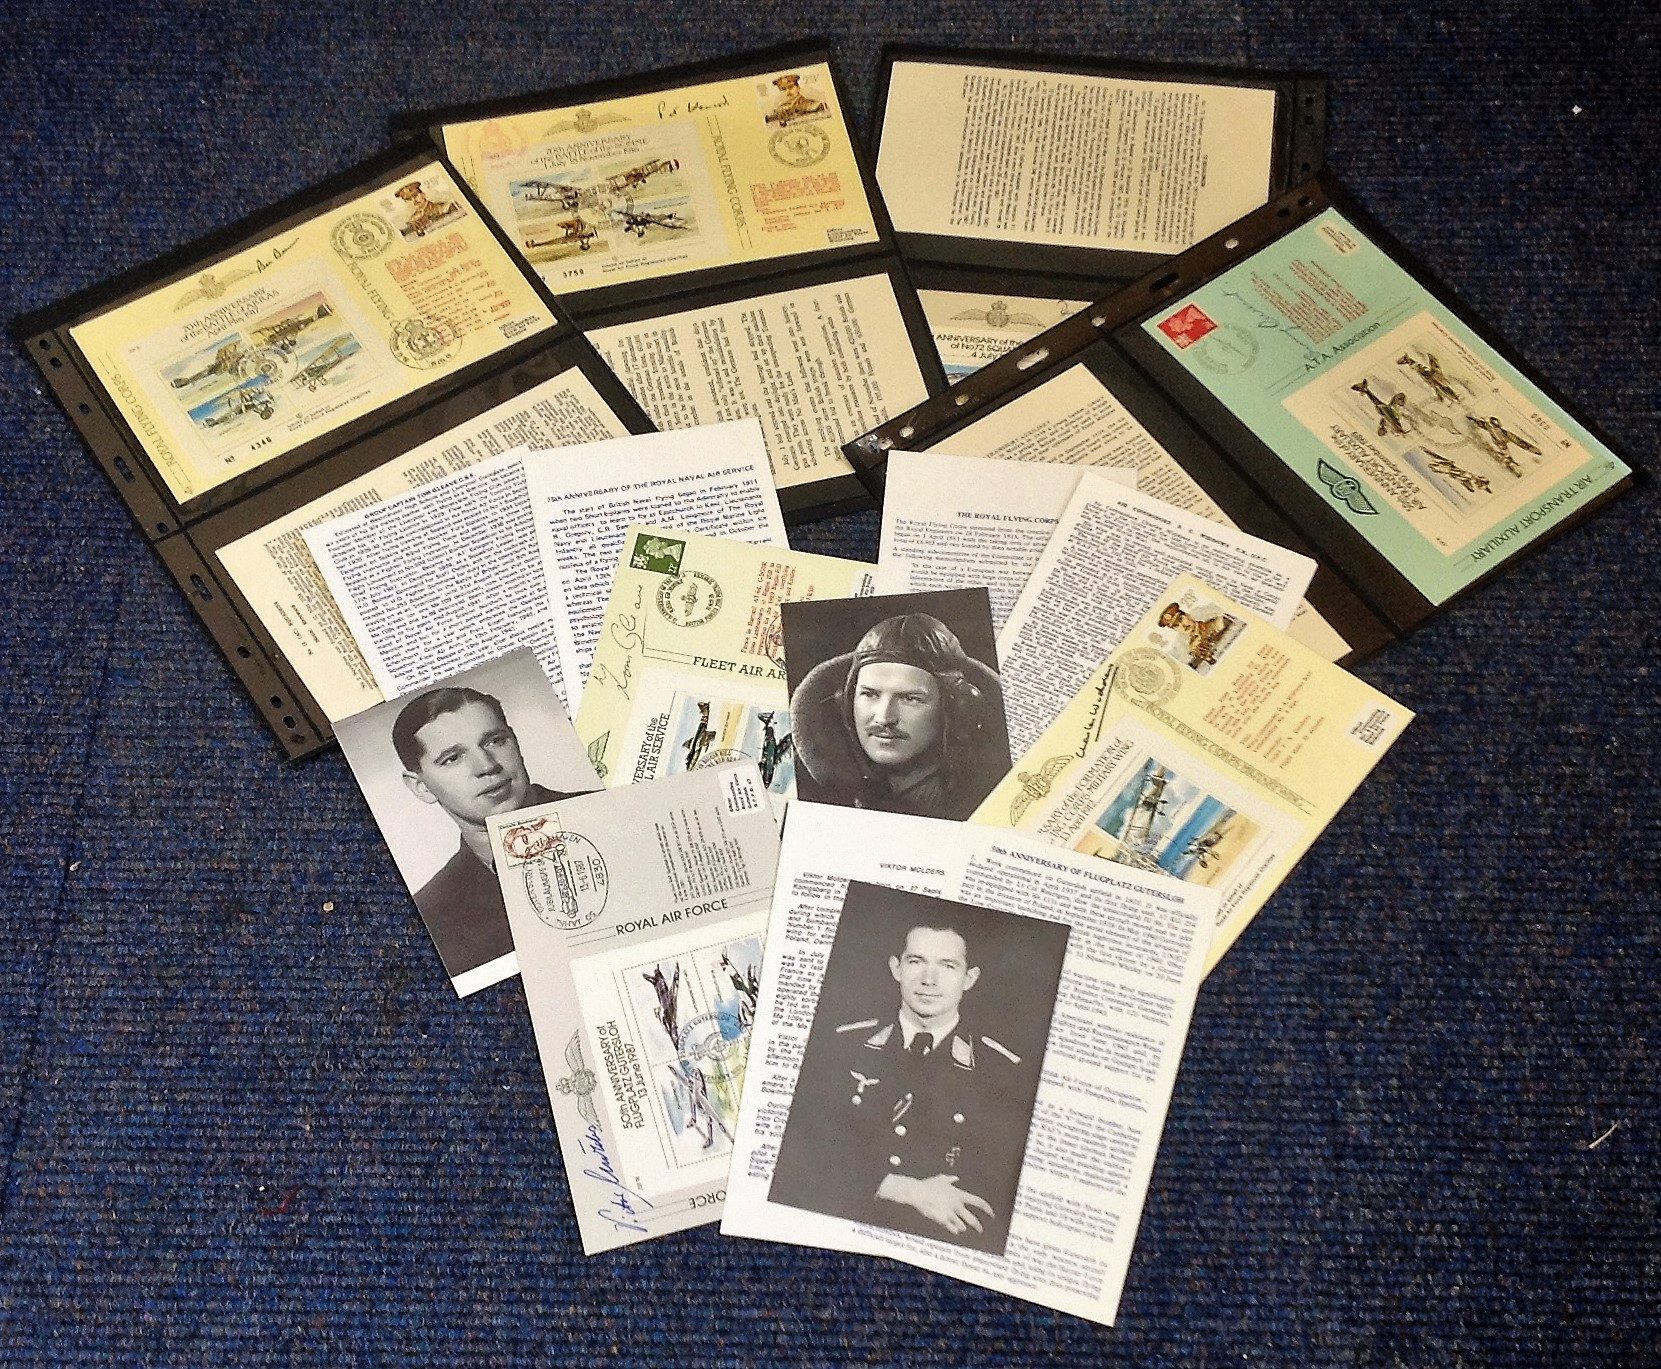 RAF collection 7 signed commemorative covers, and black and white photos and bio cards names include